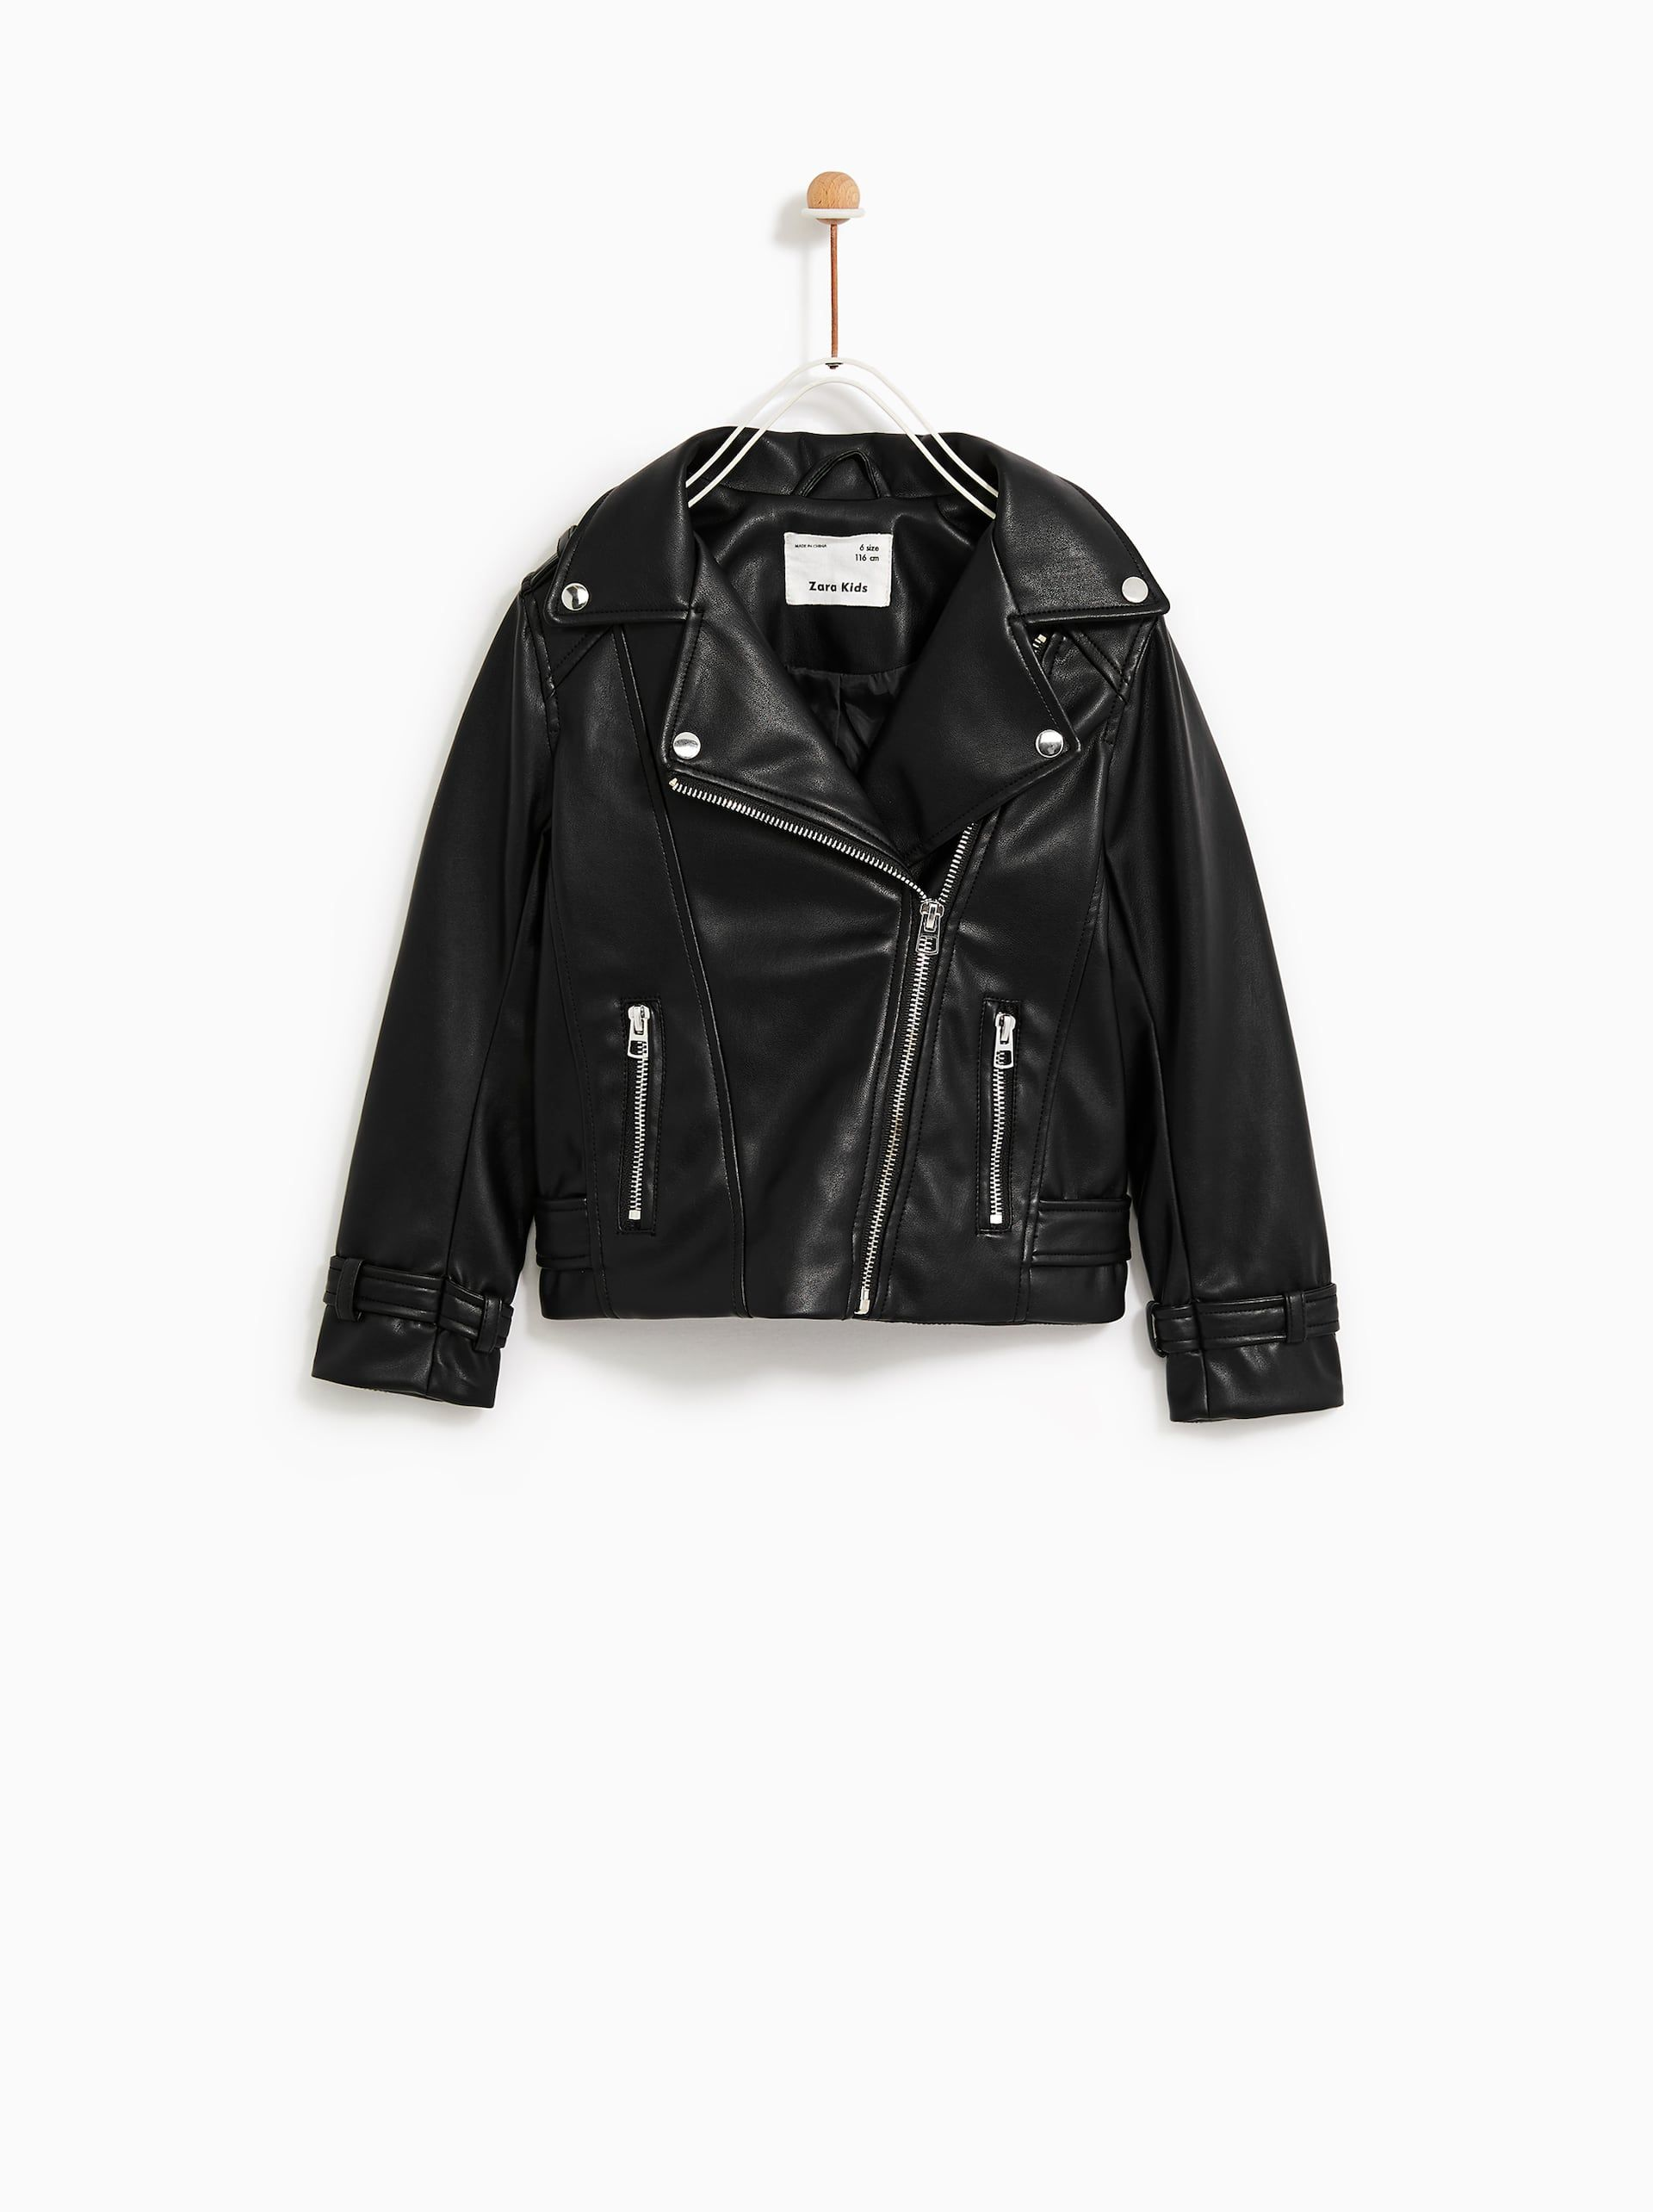 052d0a843 Leather look biker jacket | Baby girl | Zara outfit, Outerwear ...